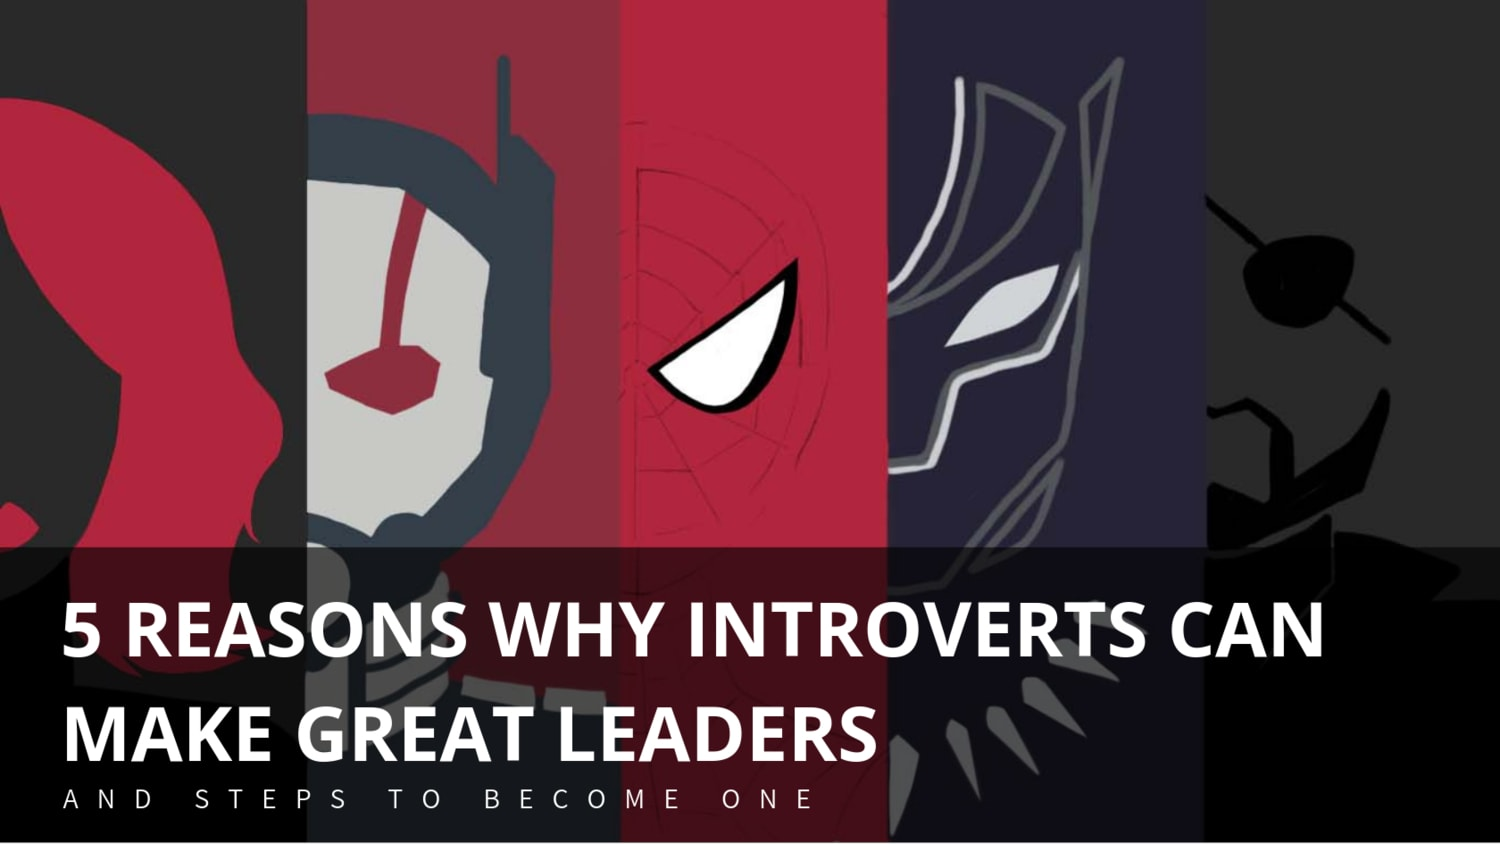 5 reasons why introverts can make great leaders and steps to become one.jpg